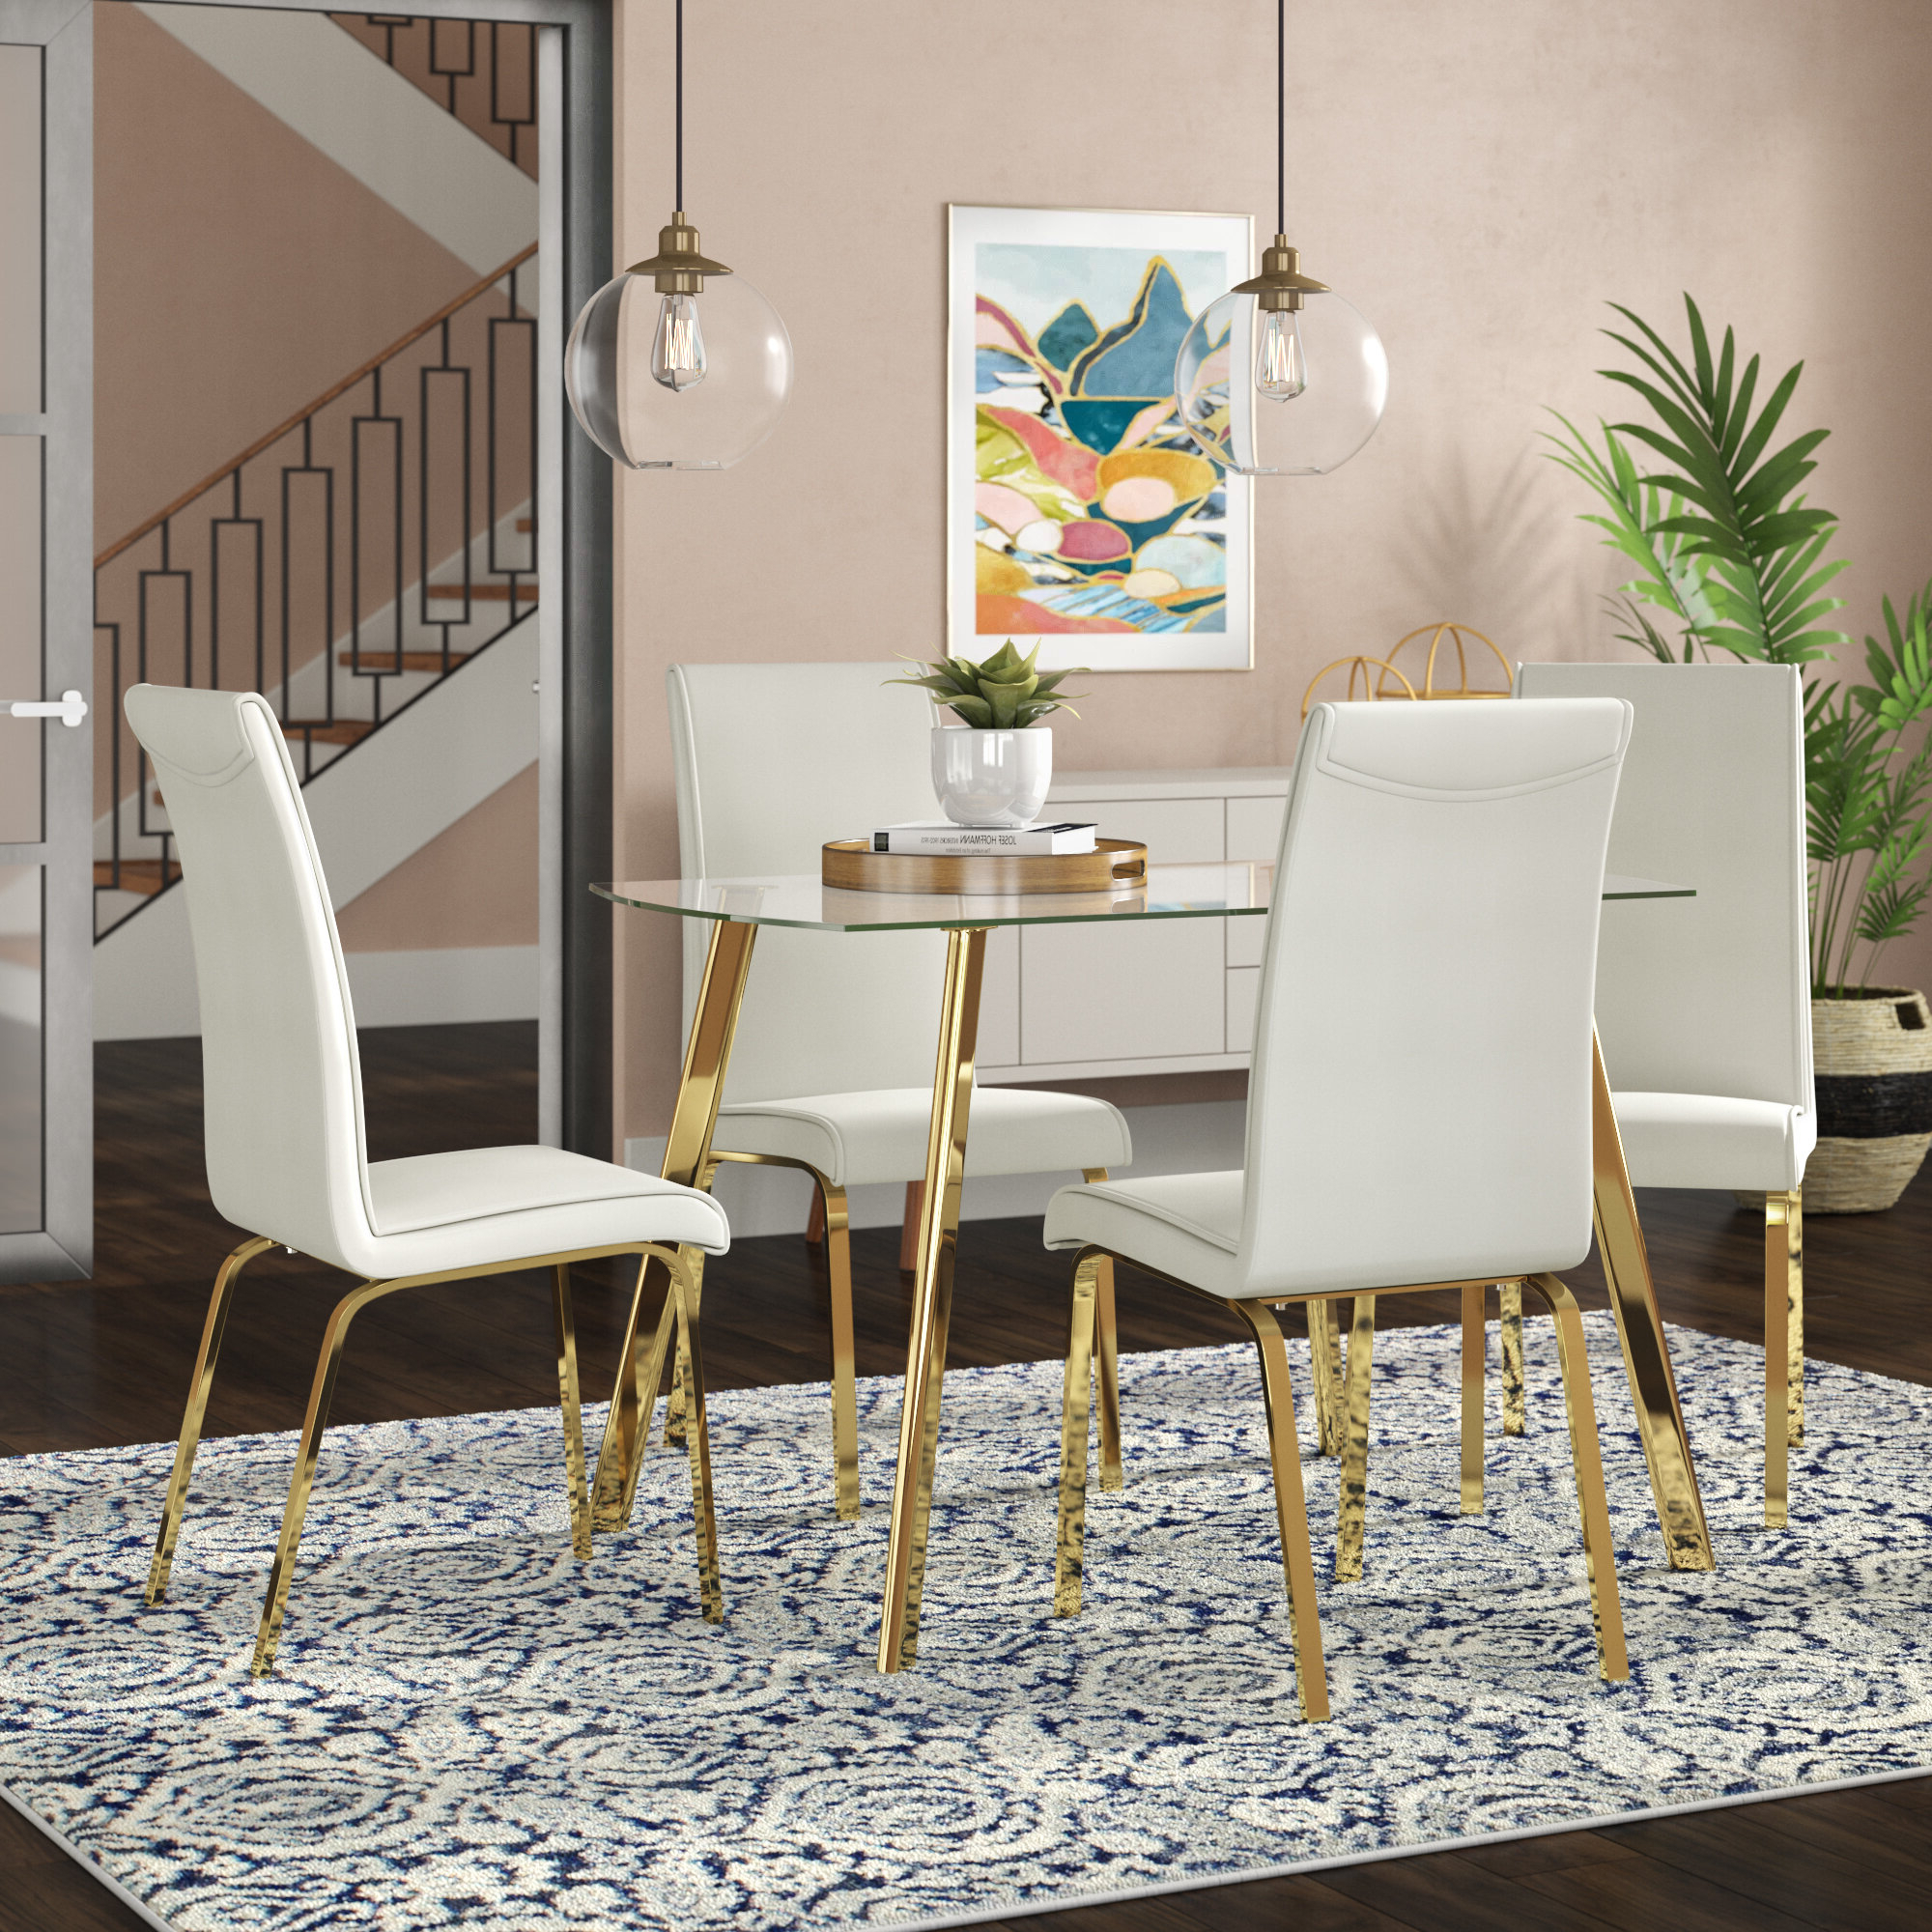 Widely used Travon 5 Piece Dining Sets throughout Wrought Studio Leia 5 Piece Dining Set